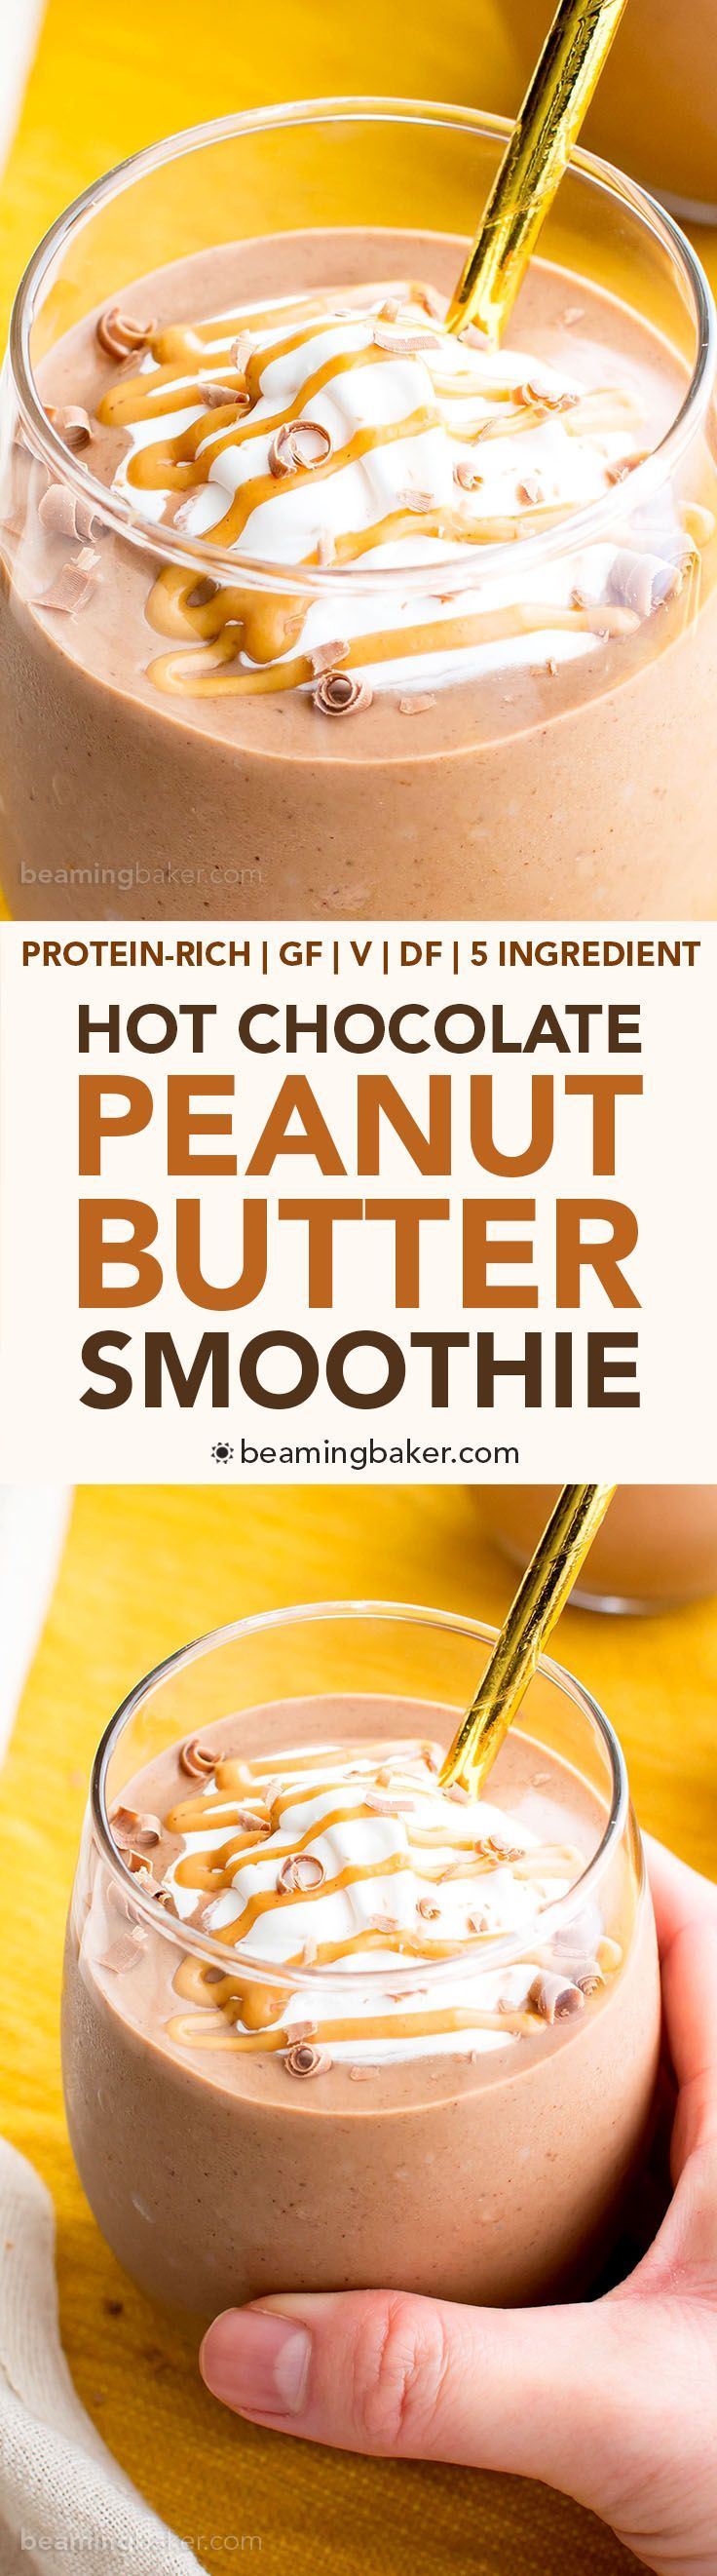 Peanut Butter Hot Chocolate Smoothie (Vegan, Gluten Free, Protein-Packed, Dairy-Free) - Beaming Baker